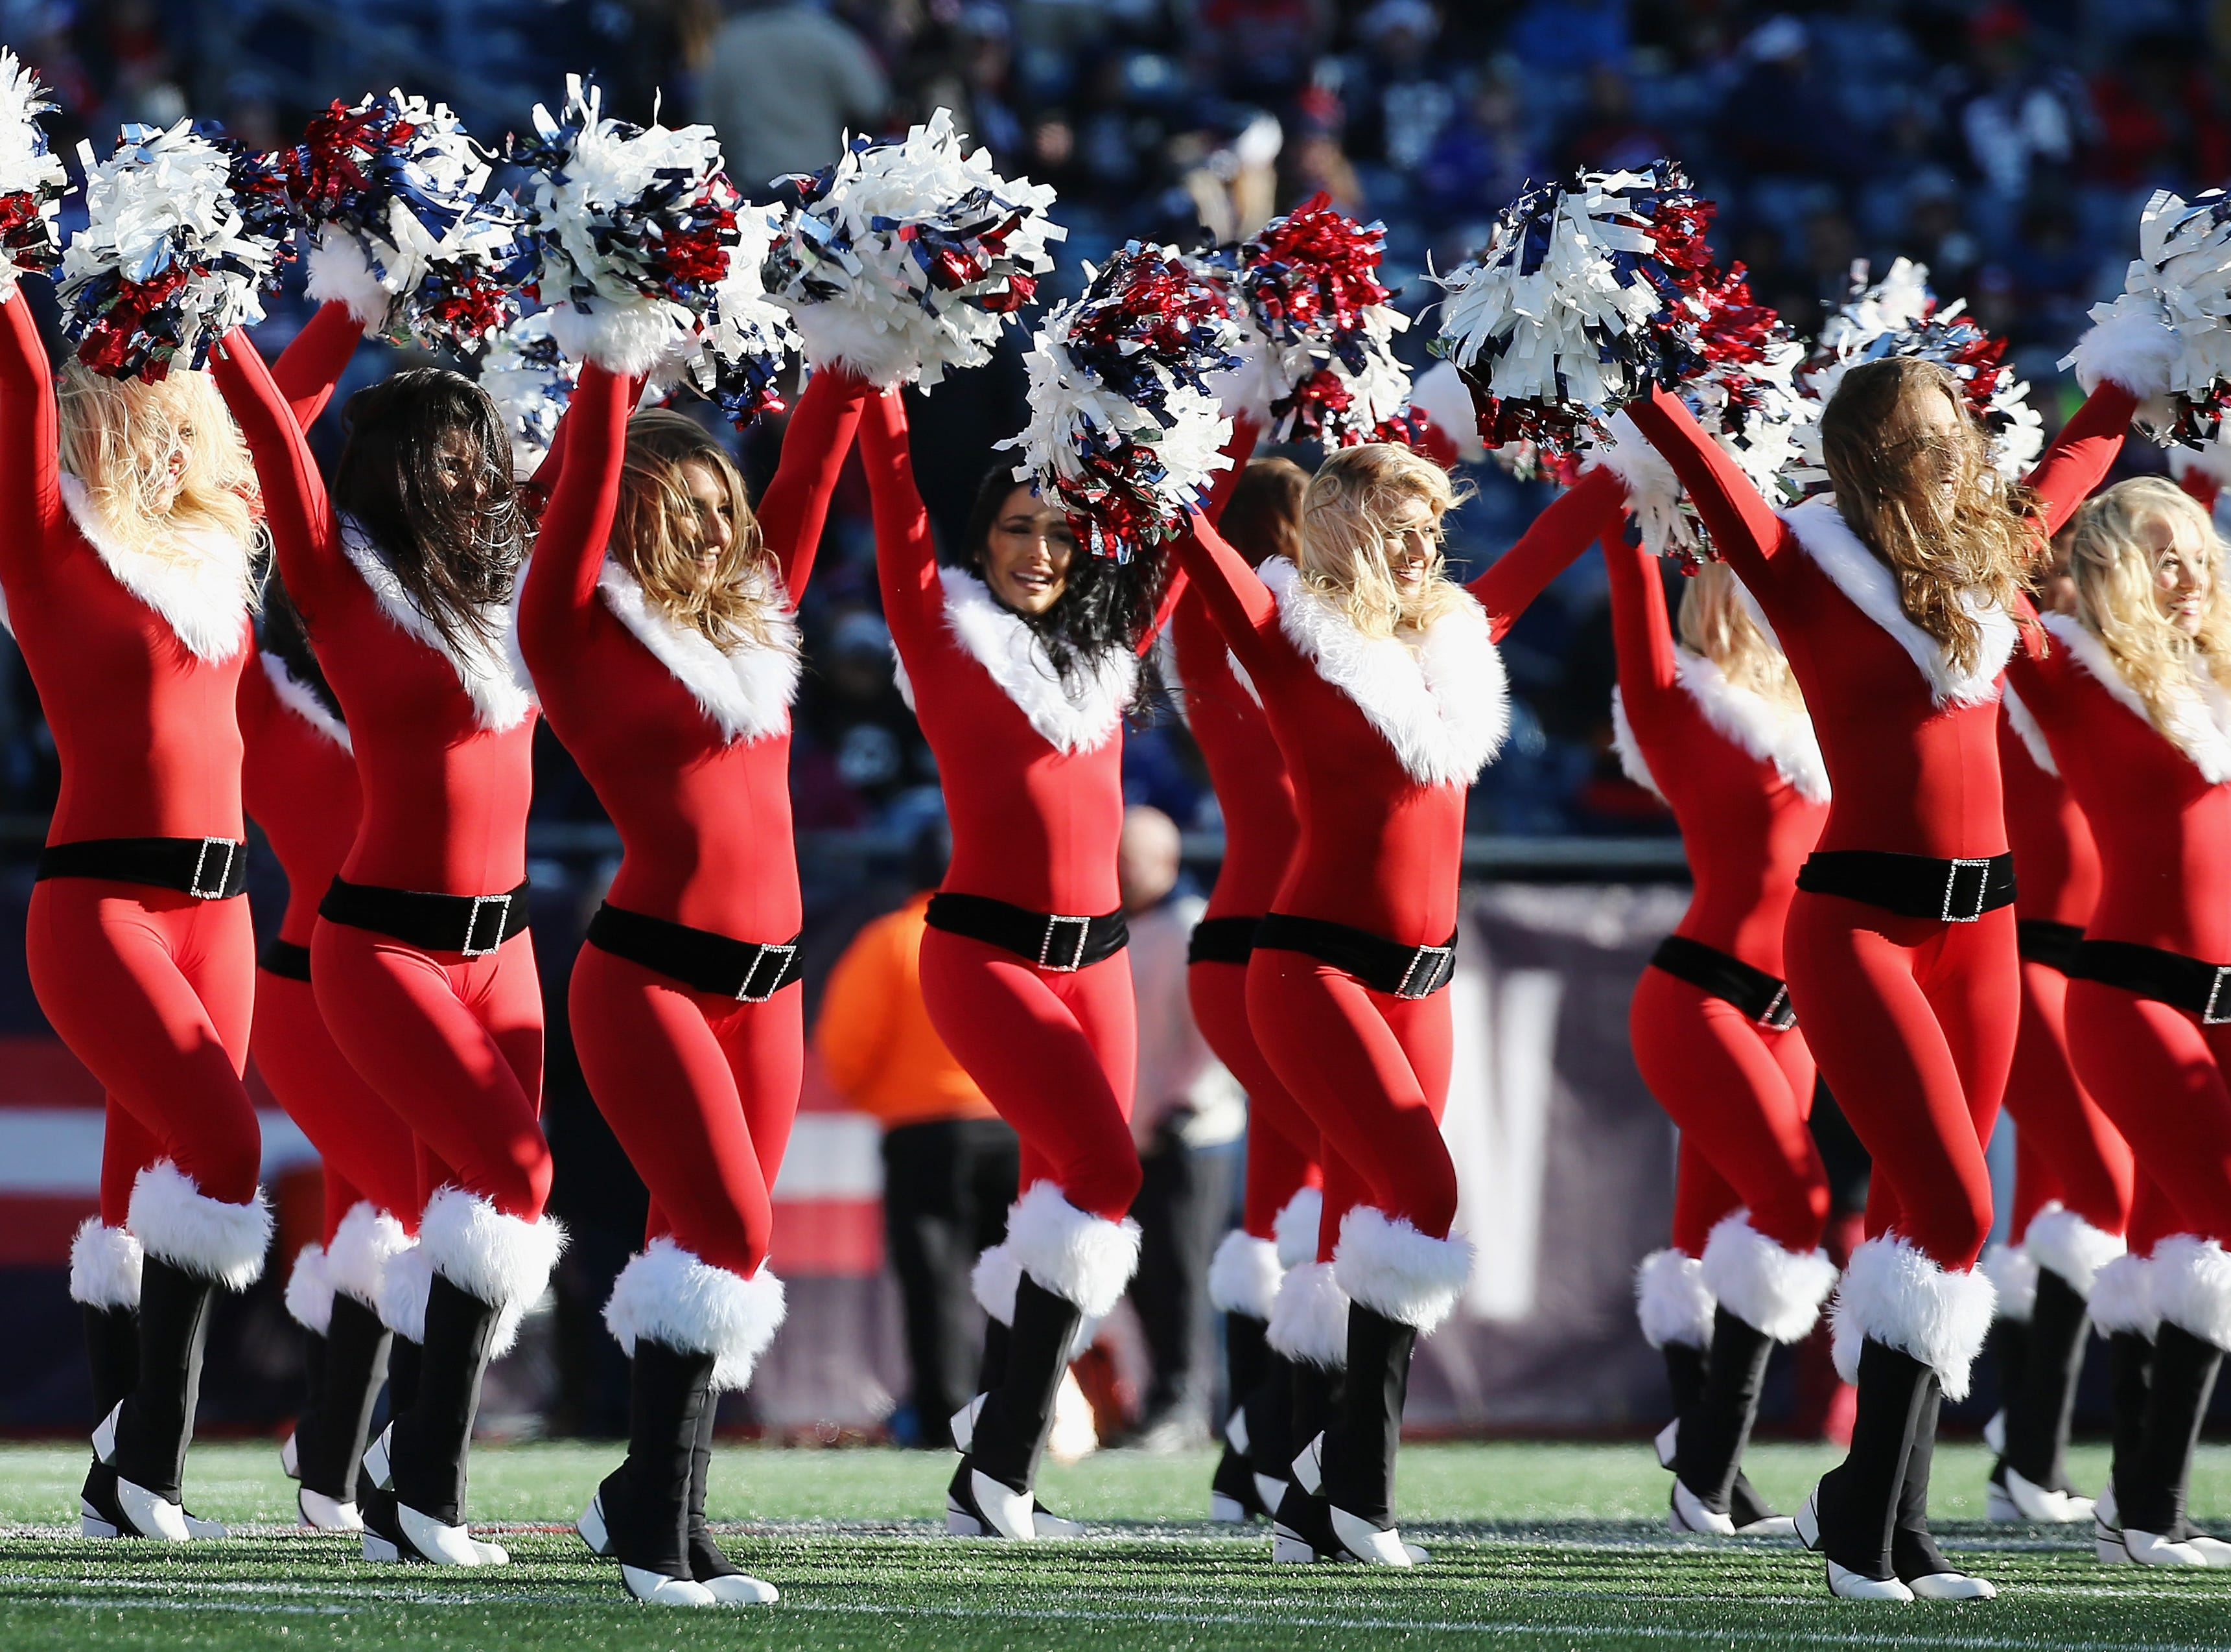 FOXBOROUGH, MA - DECEMBER 23:  New England Patriots cheerleaders perform during the first half of the game between the Buffalo Bills and the New England Patriots at Gillette Stadium on December 23, 2018 in Foxborough, Massachusetts.  (Photo by Jim Rogash/Getty Images)